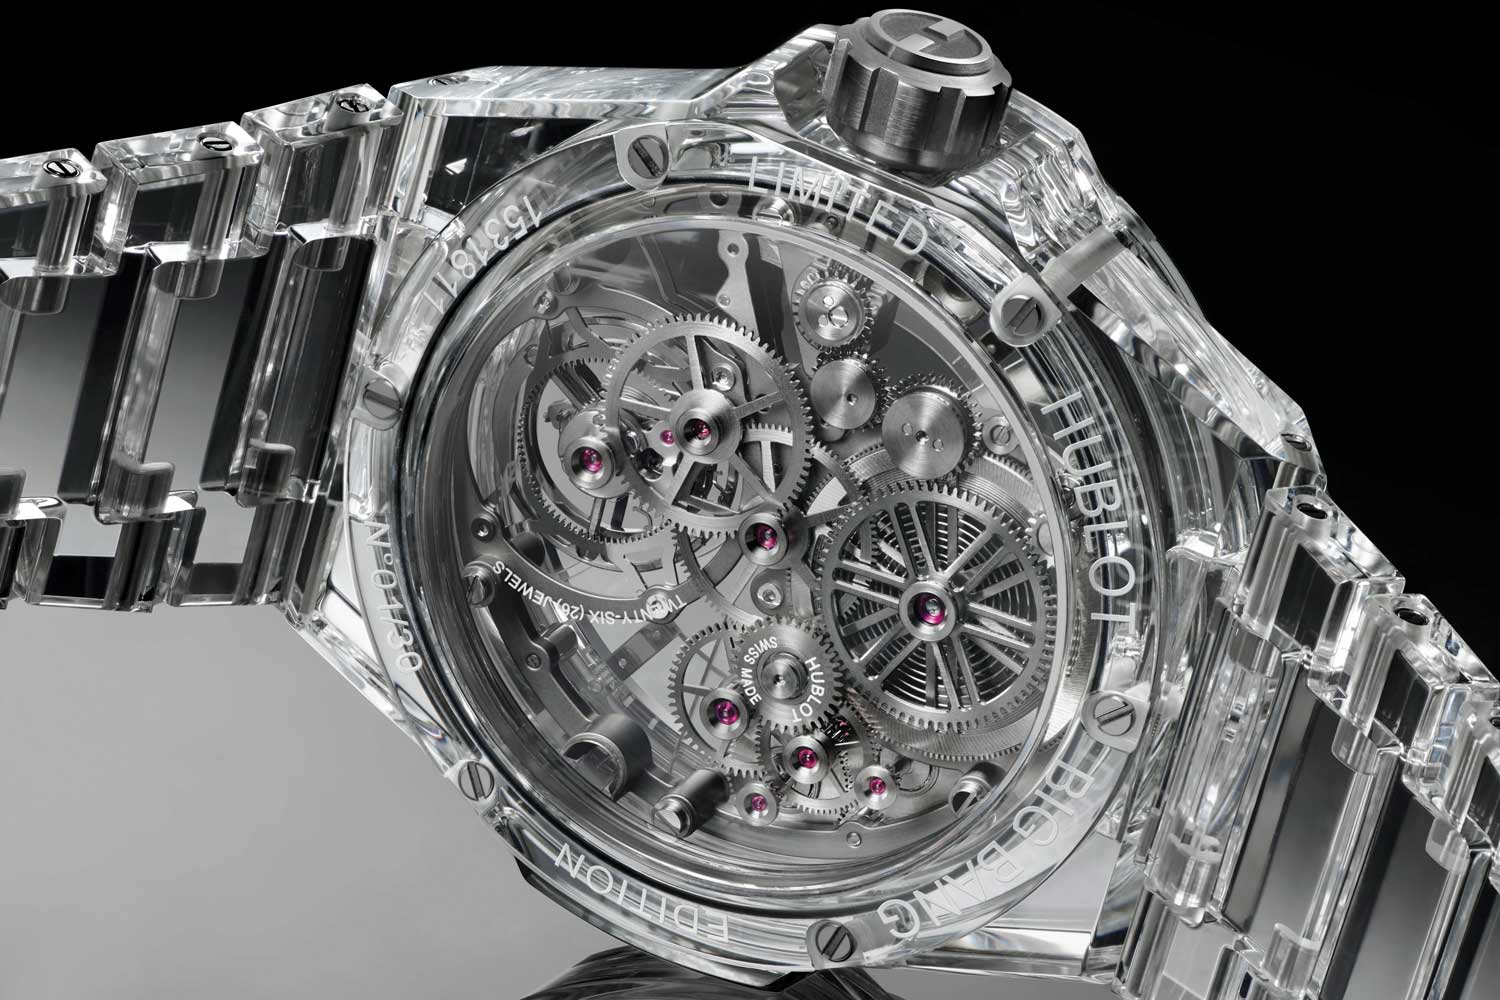 With the Big Bang Integral Tourbillon Full Sapphire, Hublot focussed on omitting all of the normally visible screws